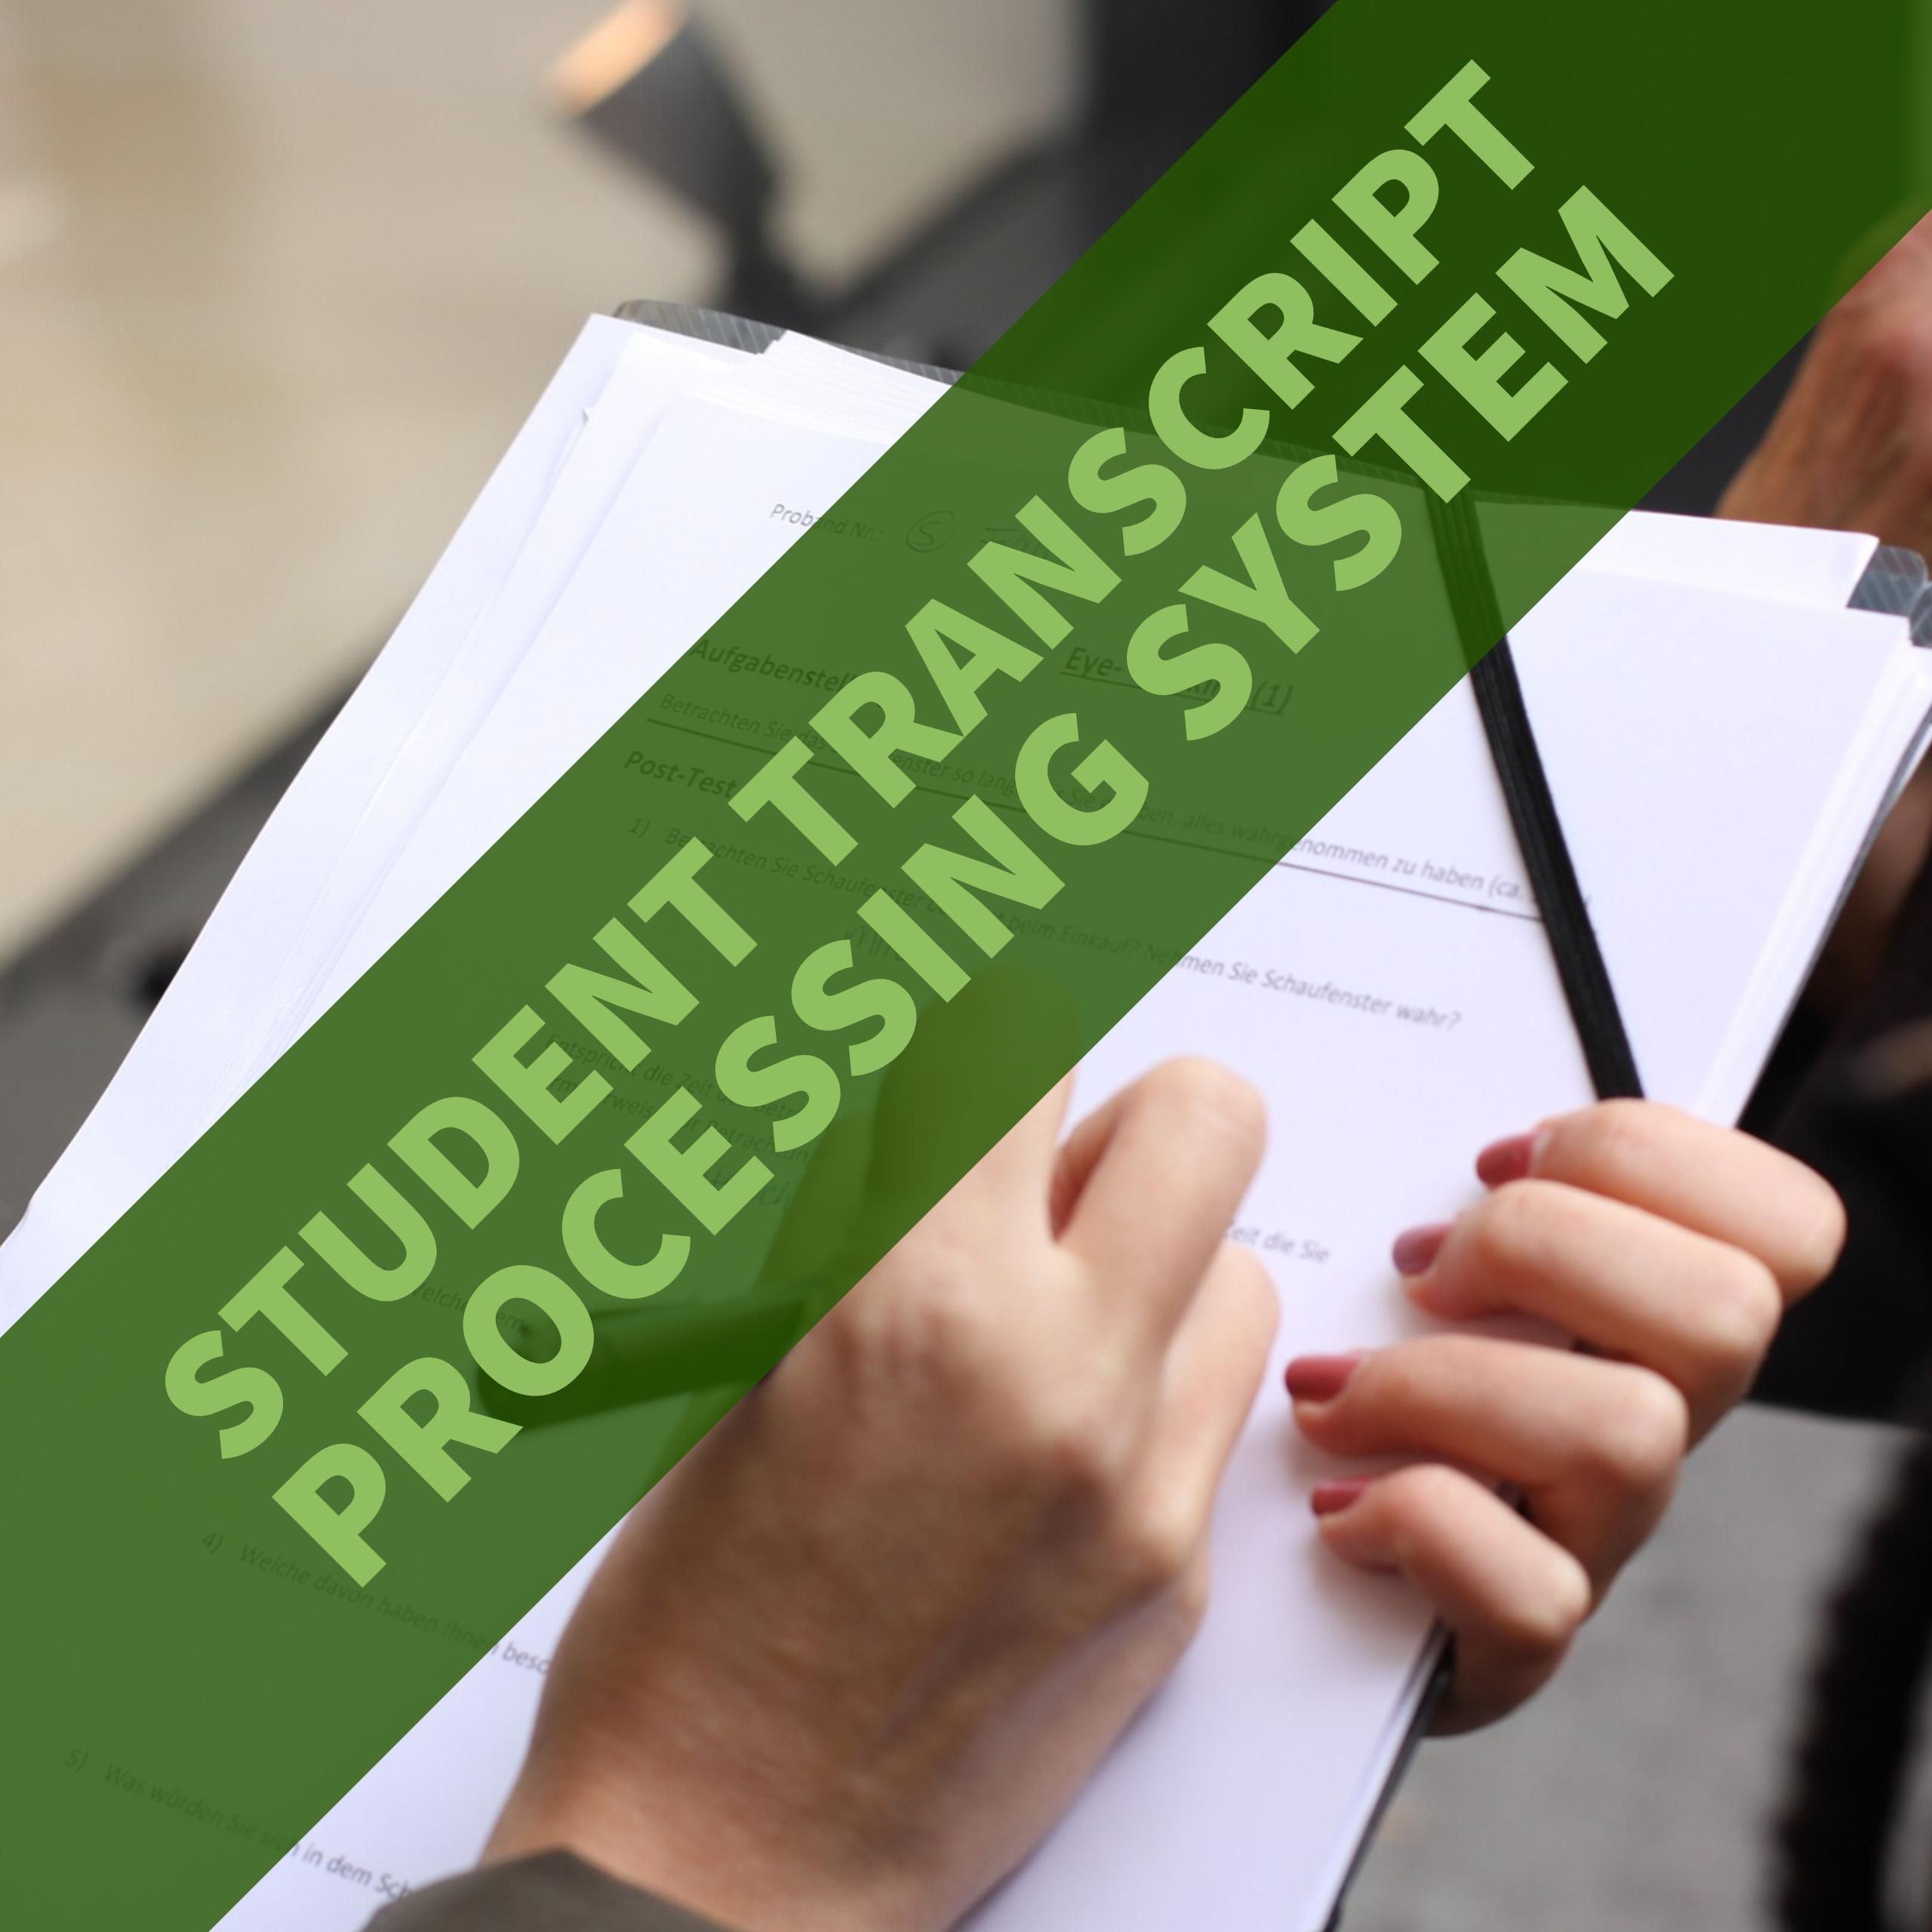 Student Transcript Processing System - CodeMint Mint for Sale